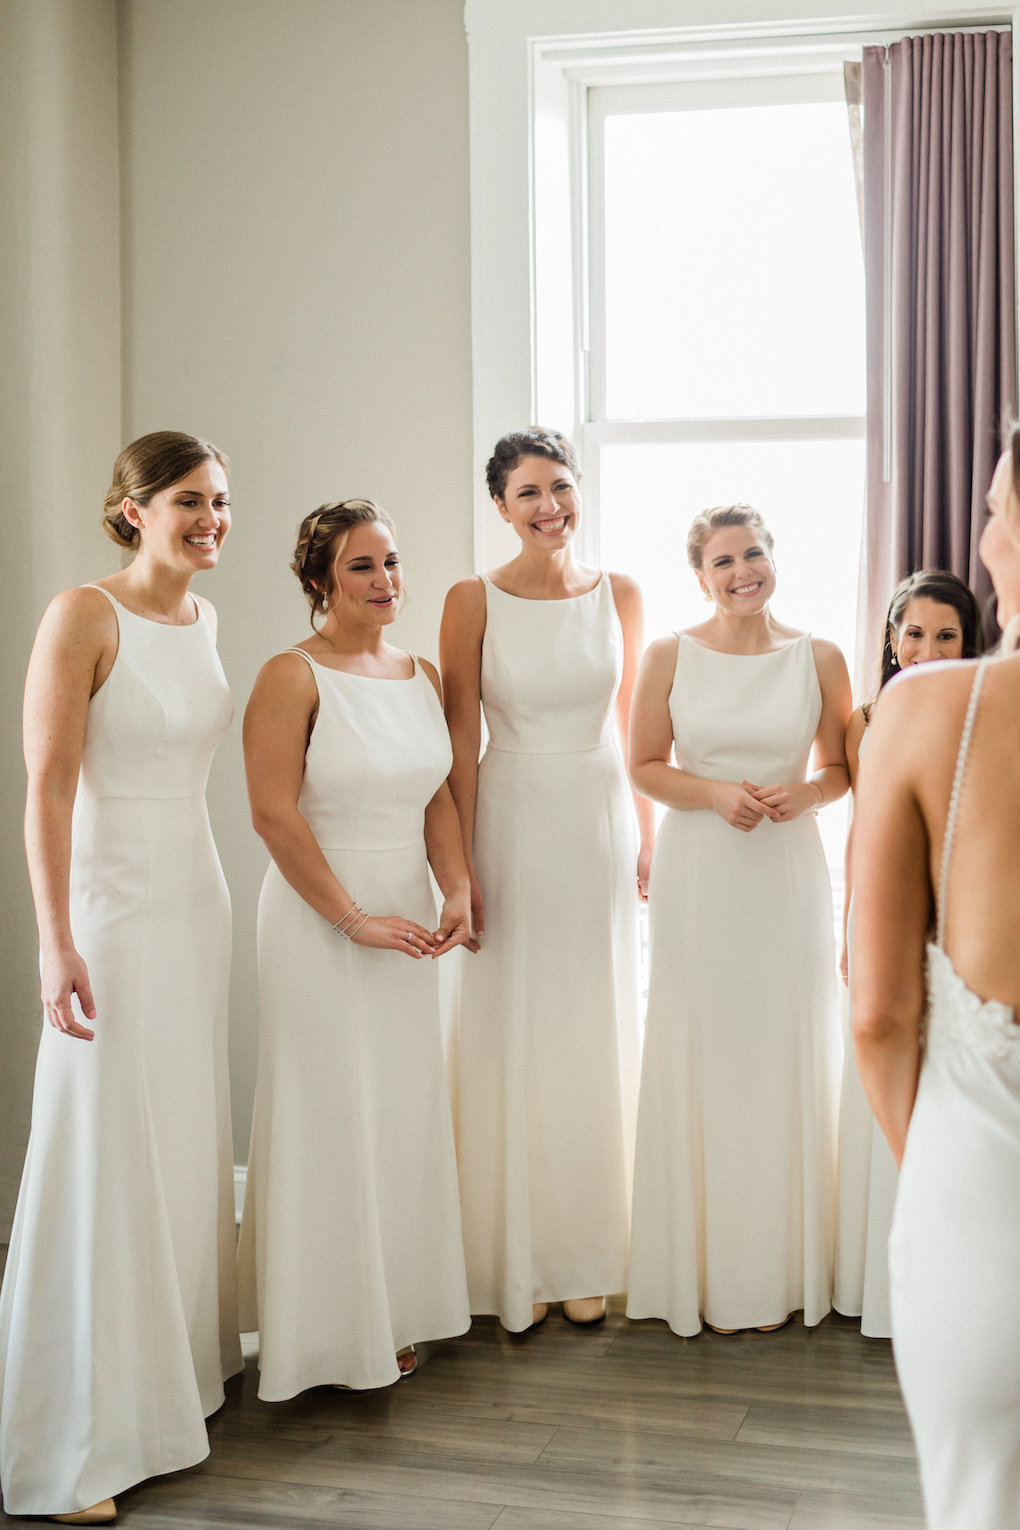 White bridesmaids dresses for chic wedding in Buffalo, NY planned by Exhale Events. Find more timeless wedding inspiration at exhale-events.com!